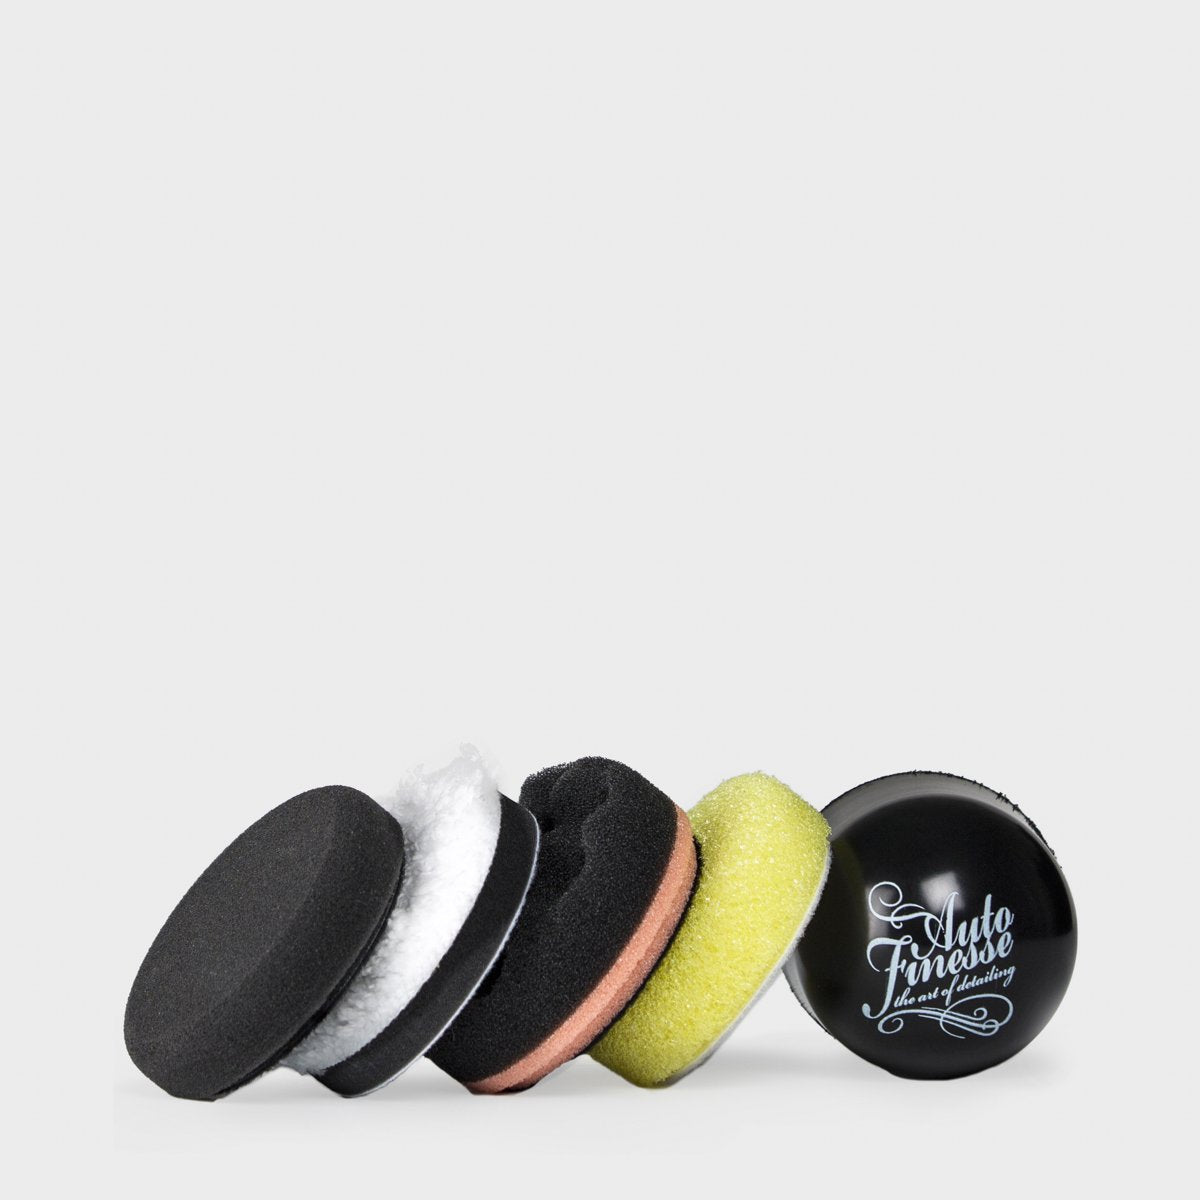 Wax Applicator Soft Foam Spot Pad For Handi Puck Auto Finesse